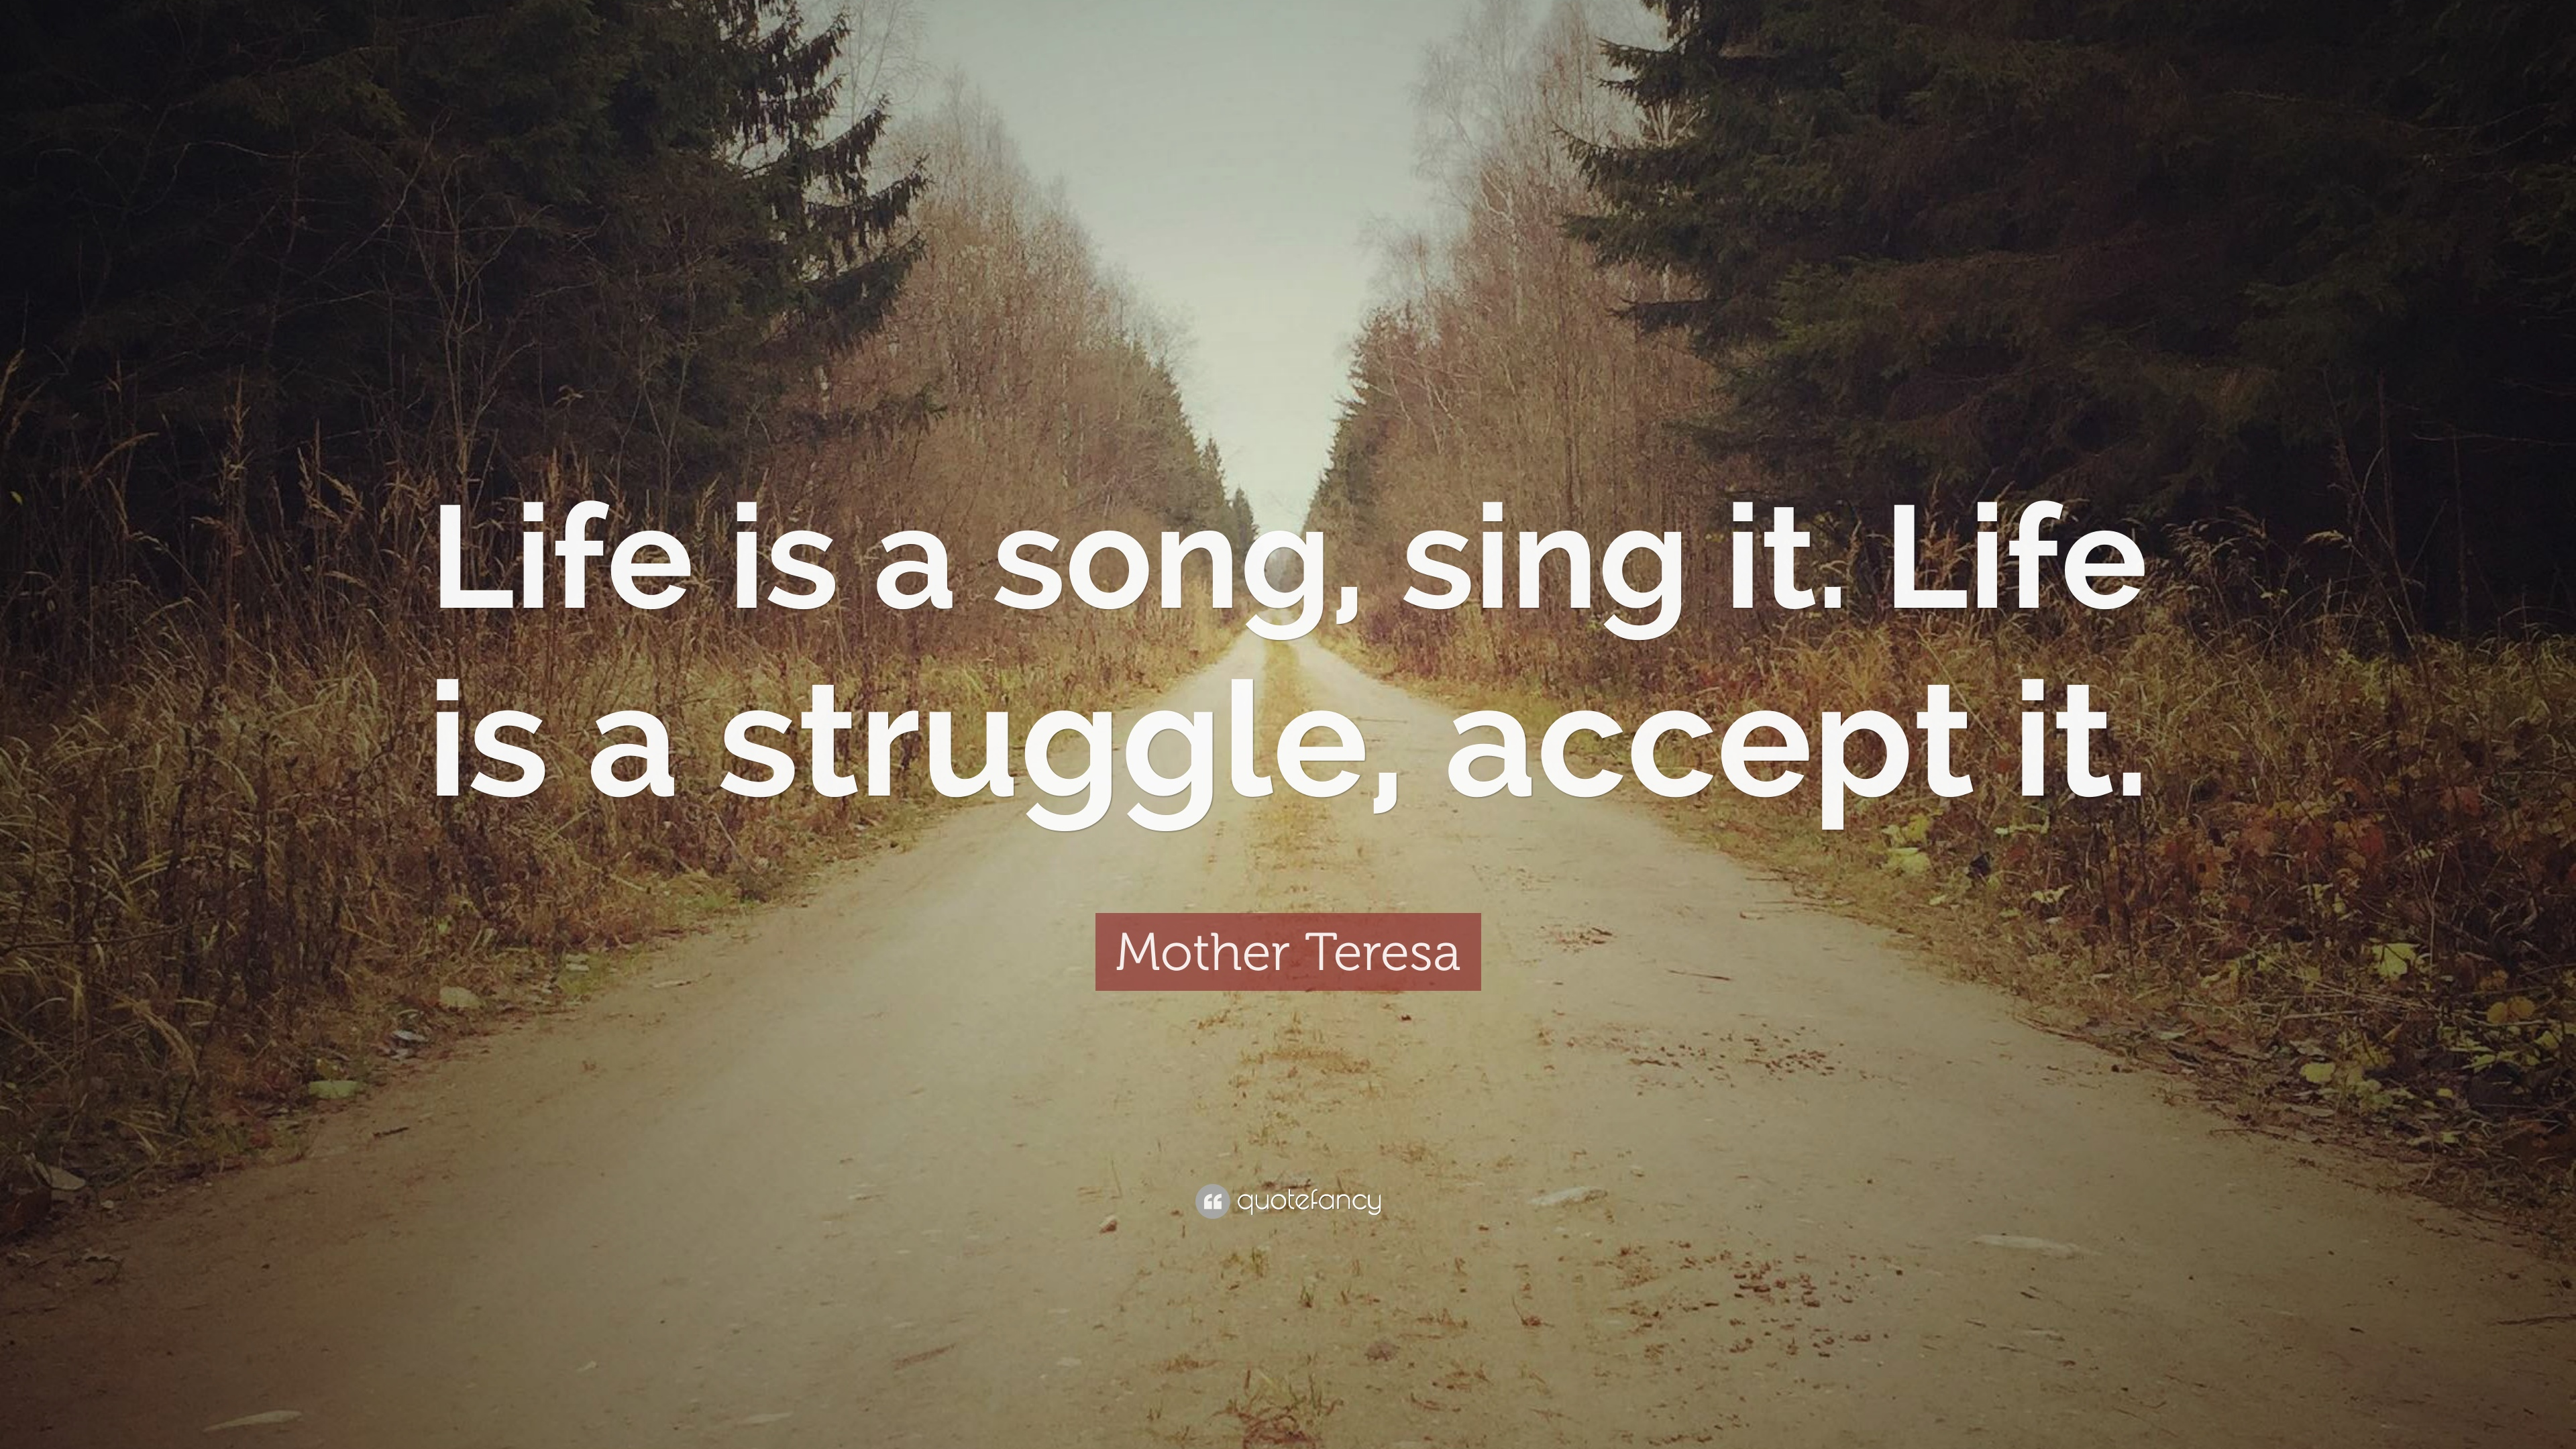 """Song Quotes About Life Mother Teresa Quote: """"Life is a song, sing it. Life is a struggle  Song Quotes About Life"""